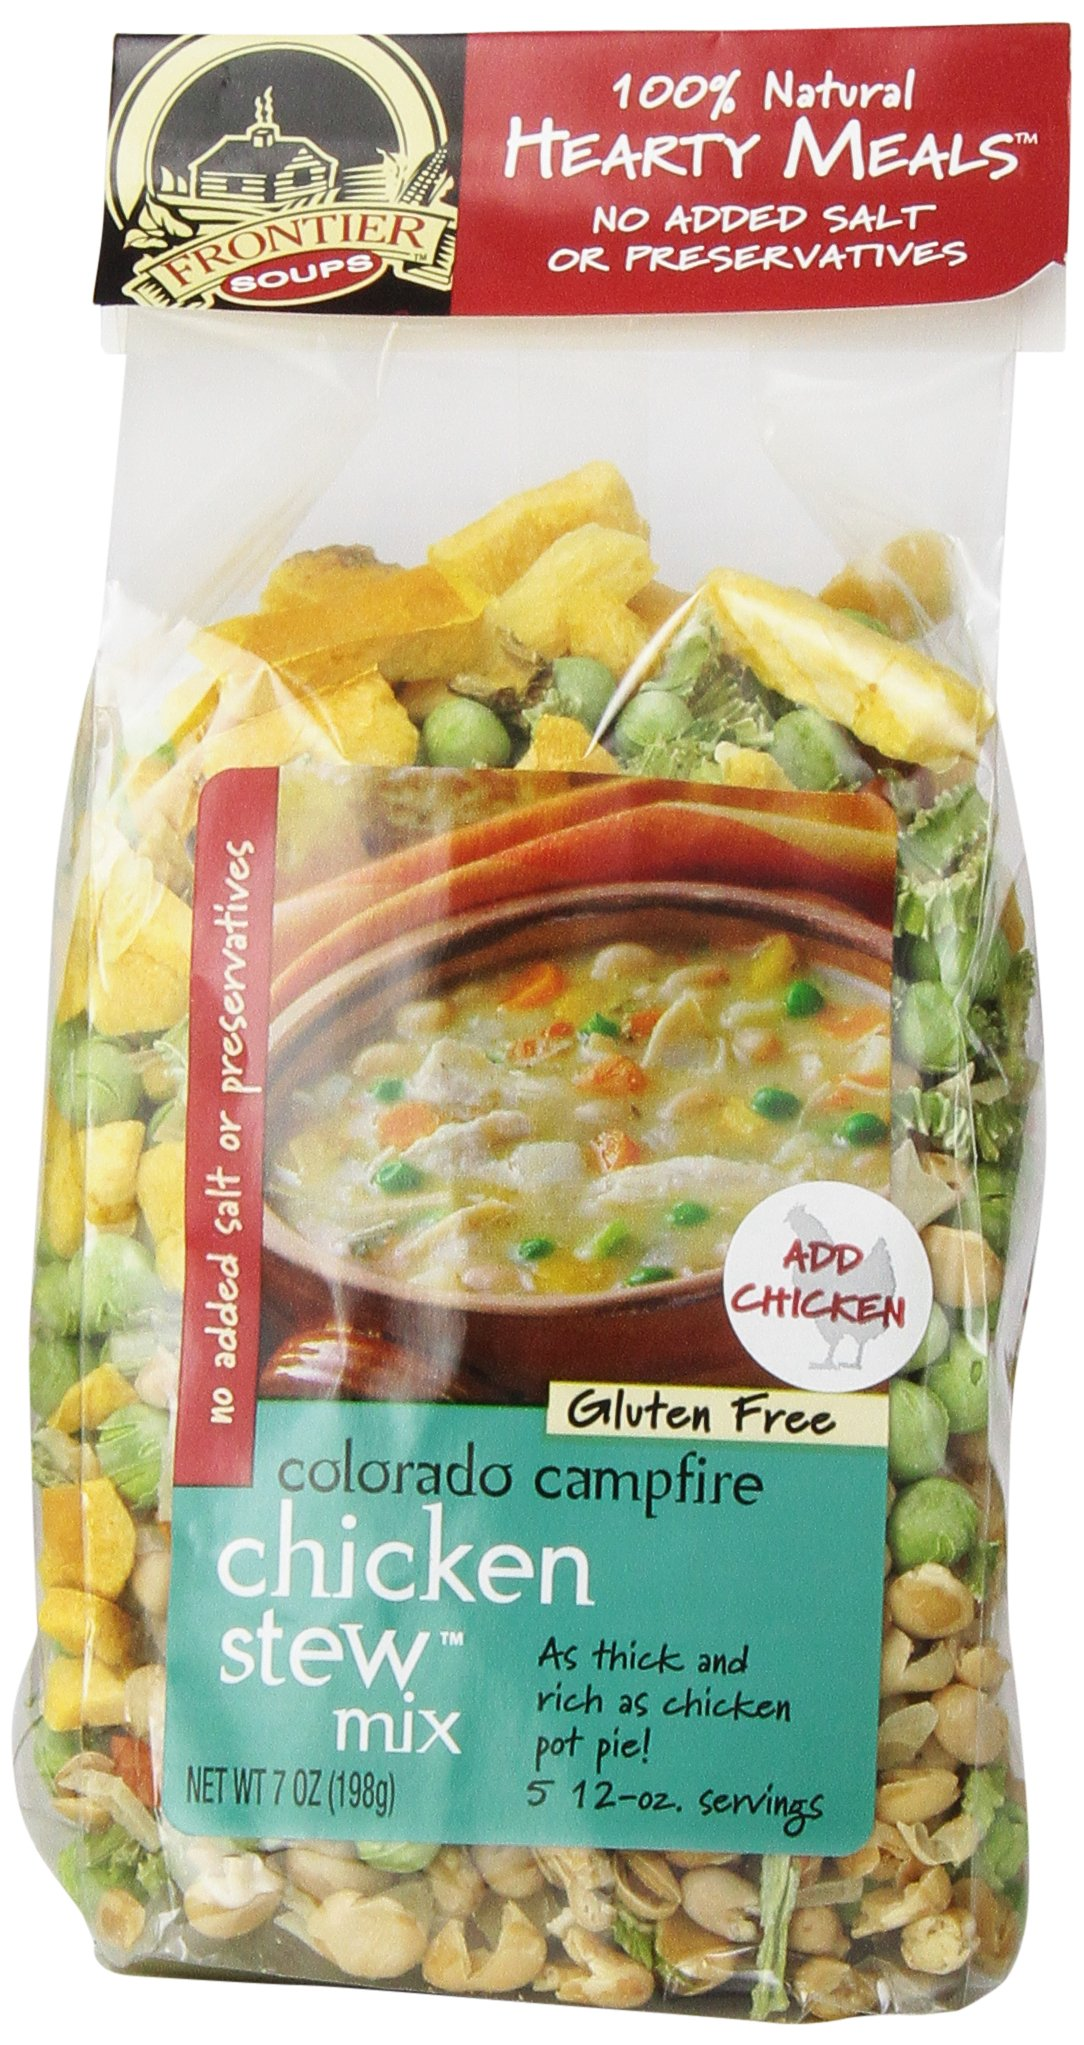 Frontier Soups Hearty Meal Soups Colorado Campfire Chicken Stew Mix, 7 Ounce